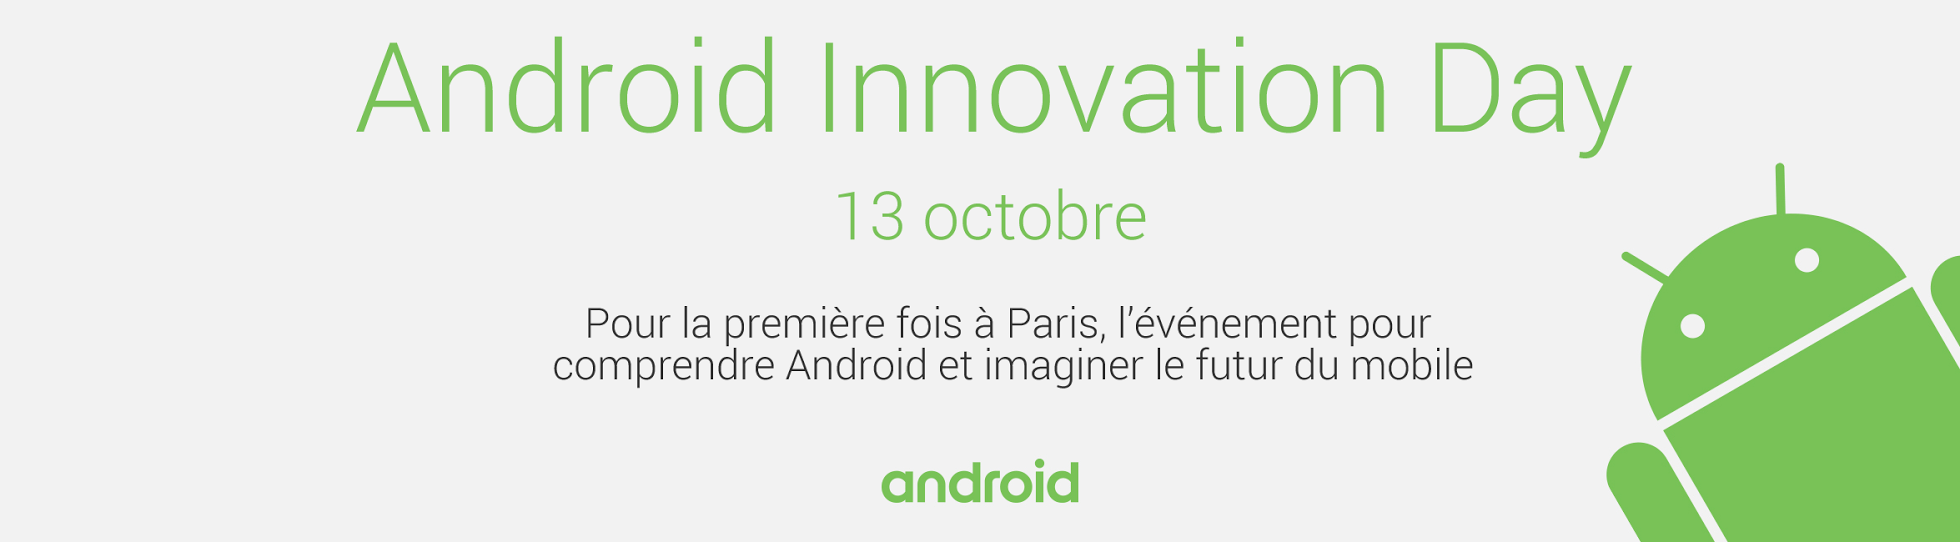 Le 13 octobre prochain, Google organise l'Android Innovation Day à Paris